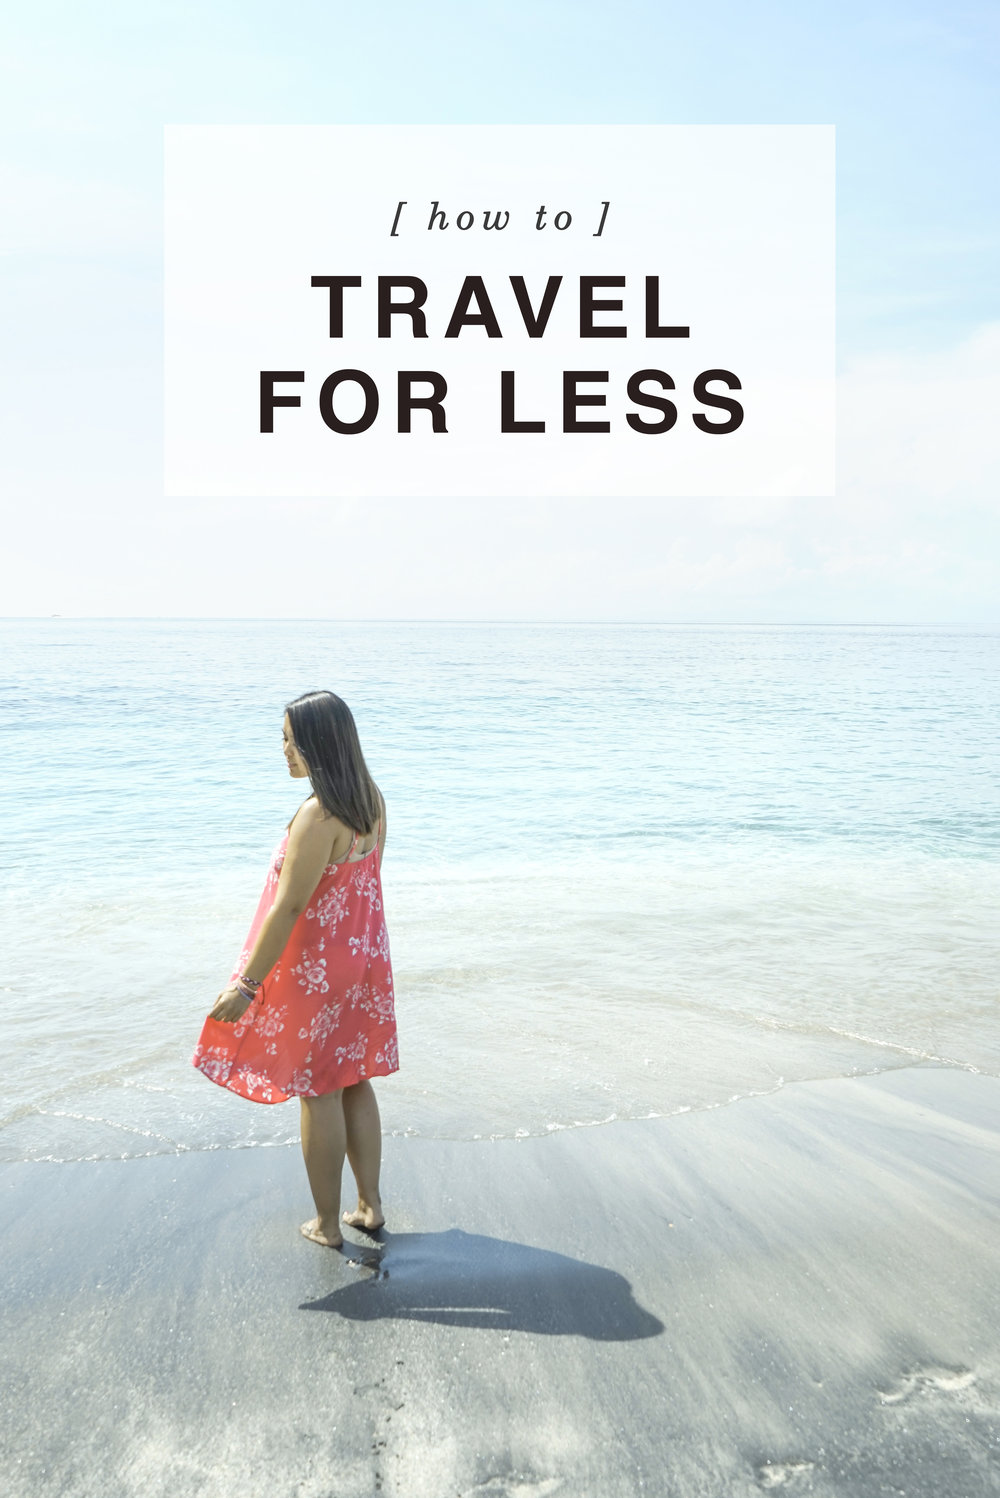 How To Travel For Less - Shannon Did What?